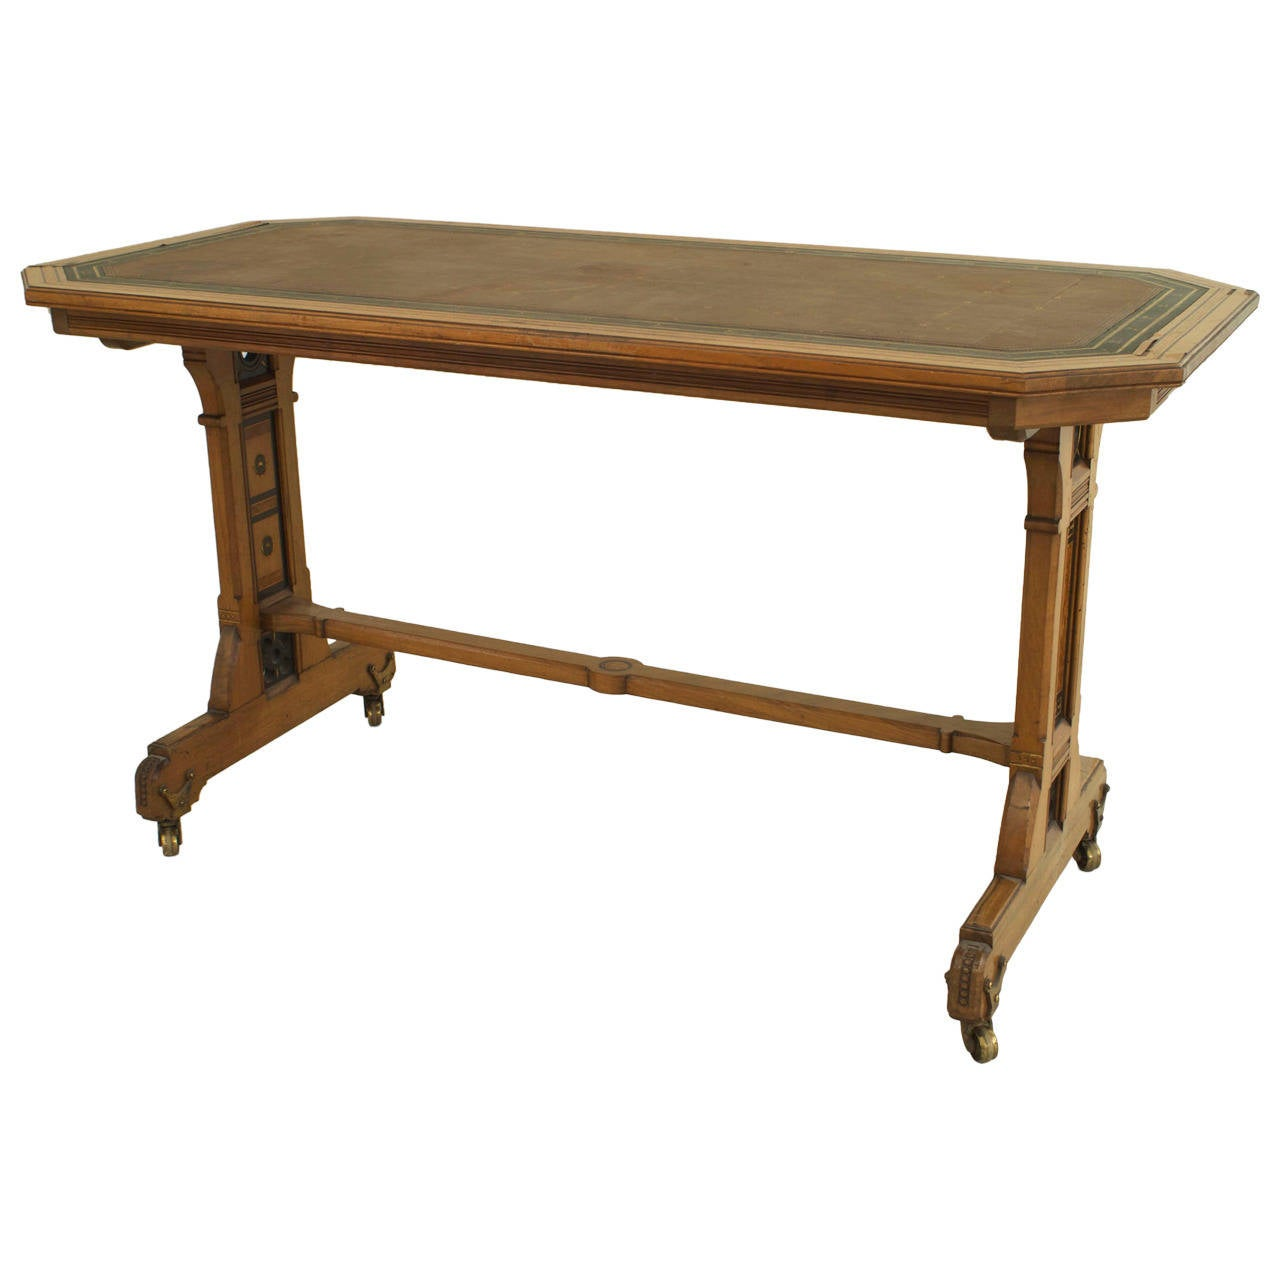 English arts and crafts elm and burl desk for sale at 1stdibs for Crafting desks for sale